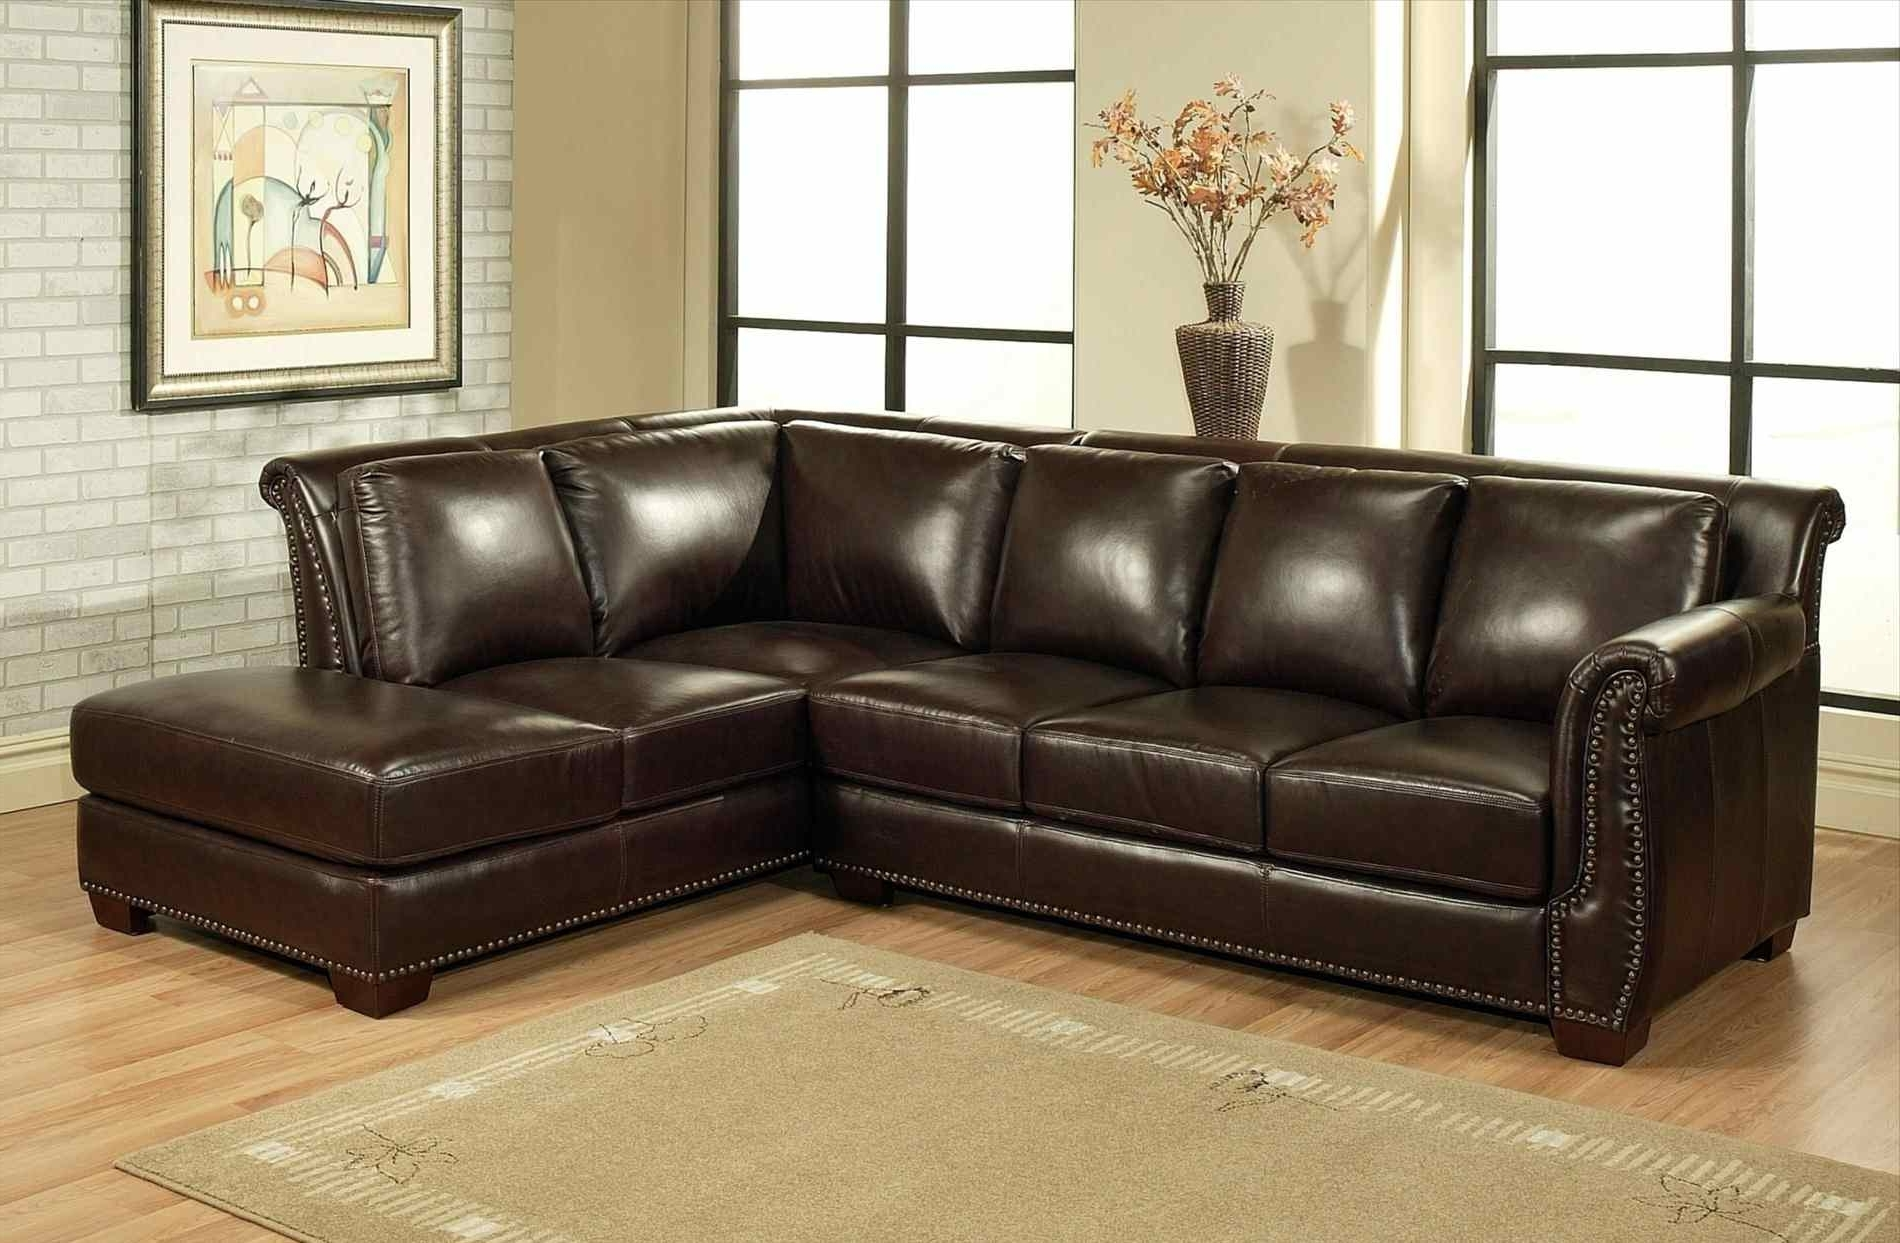 Most Recently Released Couch : Furniture Bad Boy Sectional Es Wrap Around Couch Furniture For Sectional Sofas At Bad Boy (View 11 of 20)